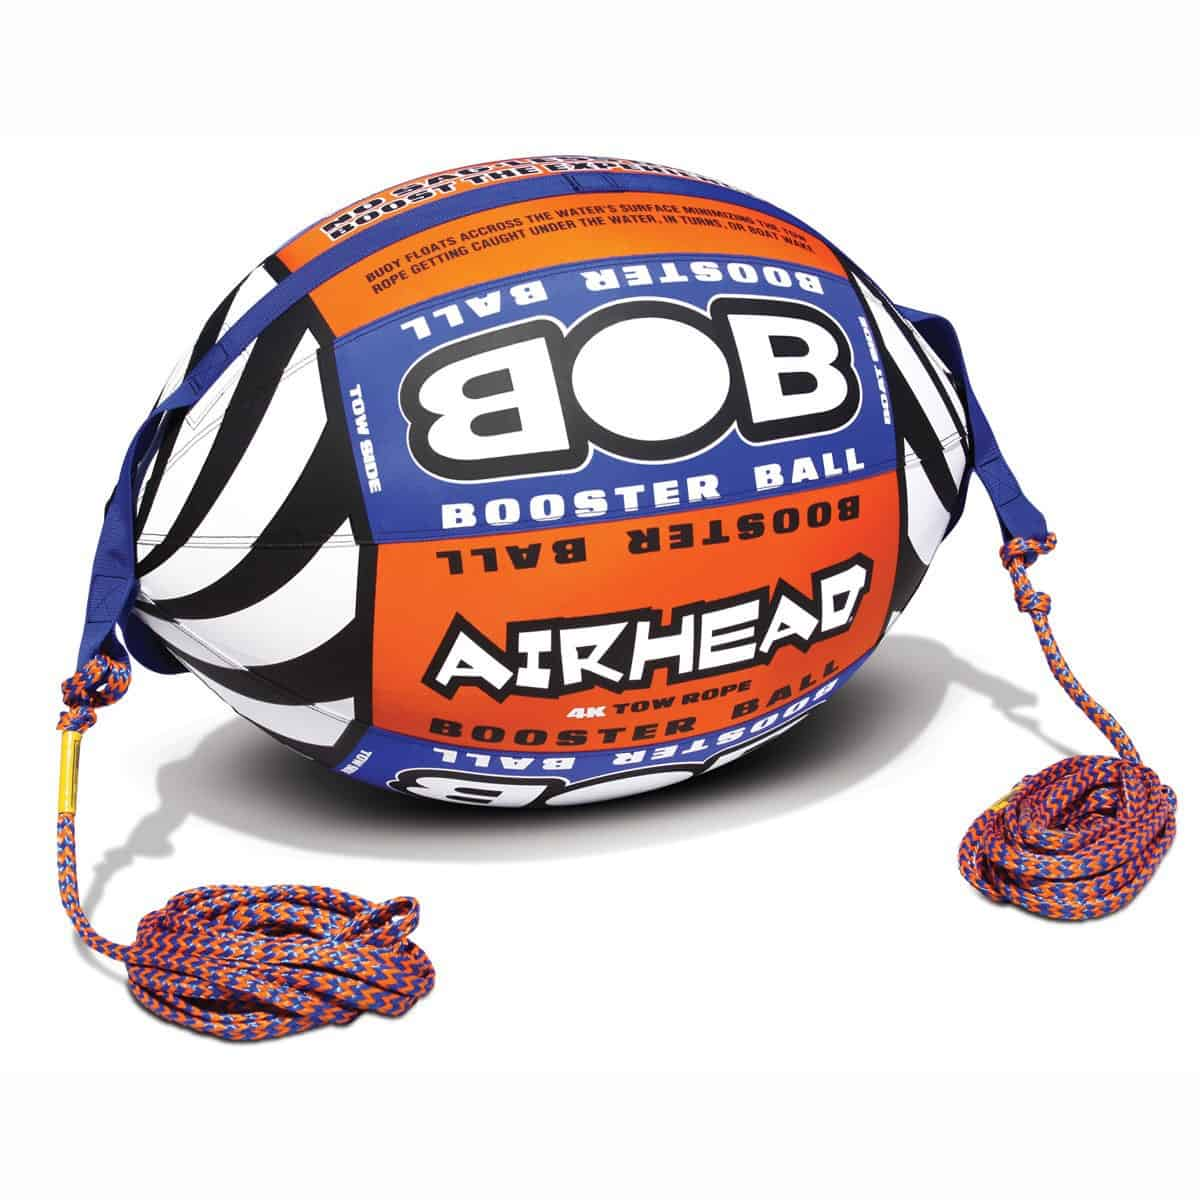 NEW 2018 Airhead BOB booster ball - Atlantis Marine